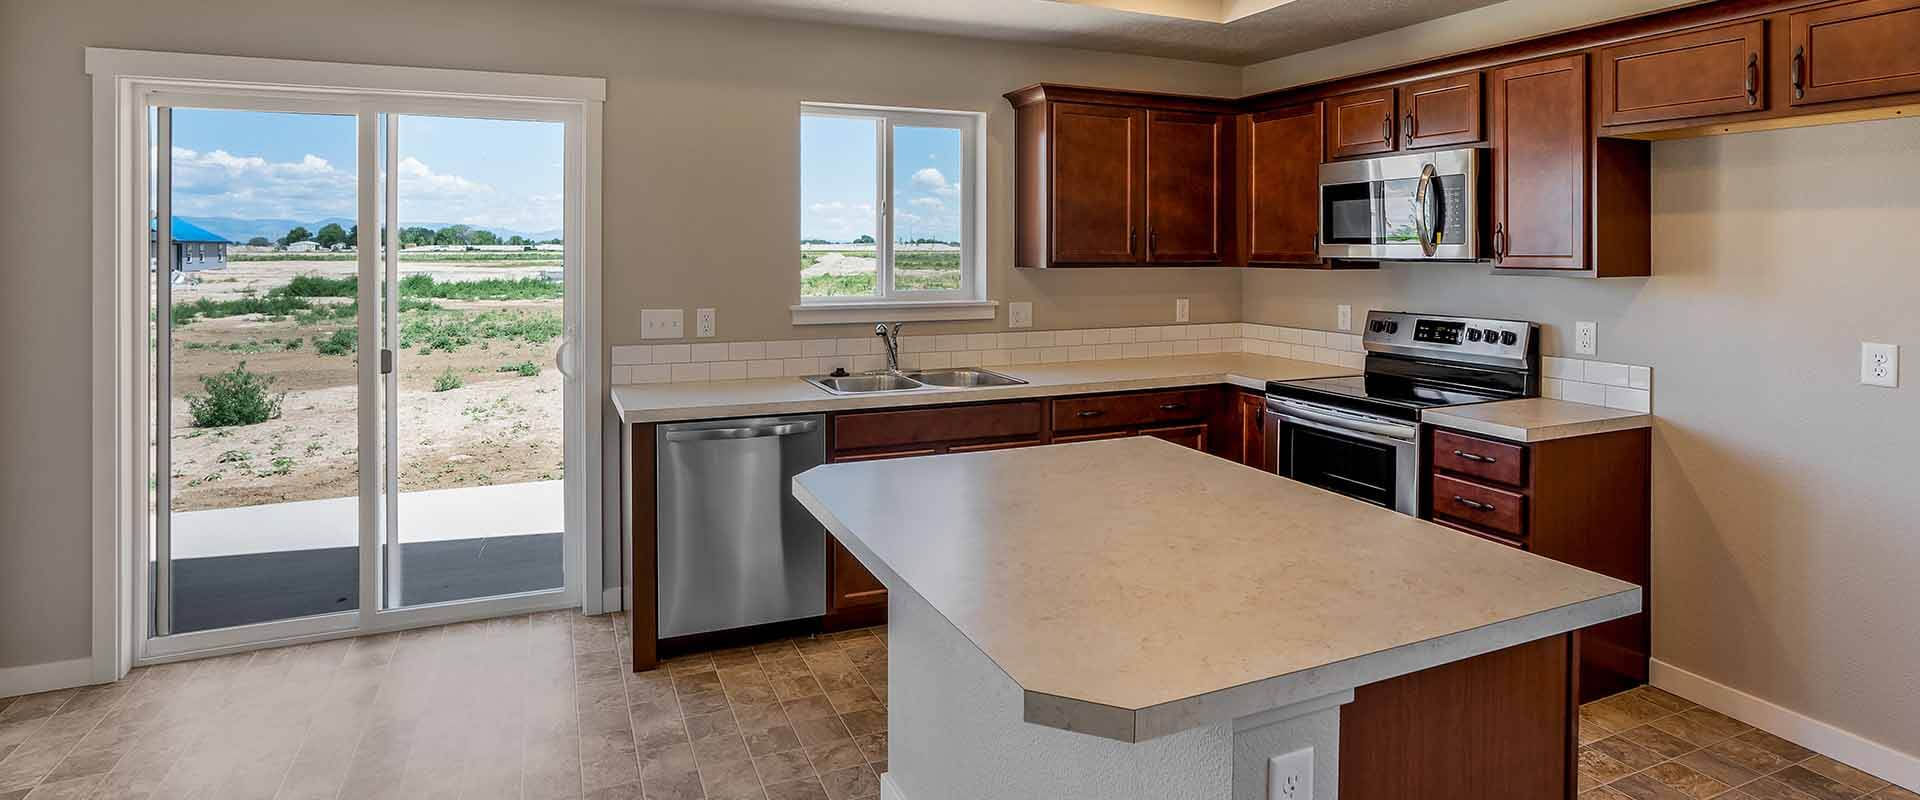 Huckleberry_Hubble_Homes_New_Homes_Boise_0001_Kitchen - Huckleberry -17930 Hensley Ridge Pl-6.jpg